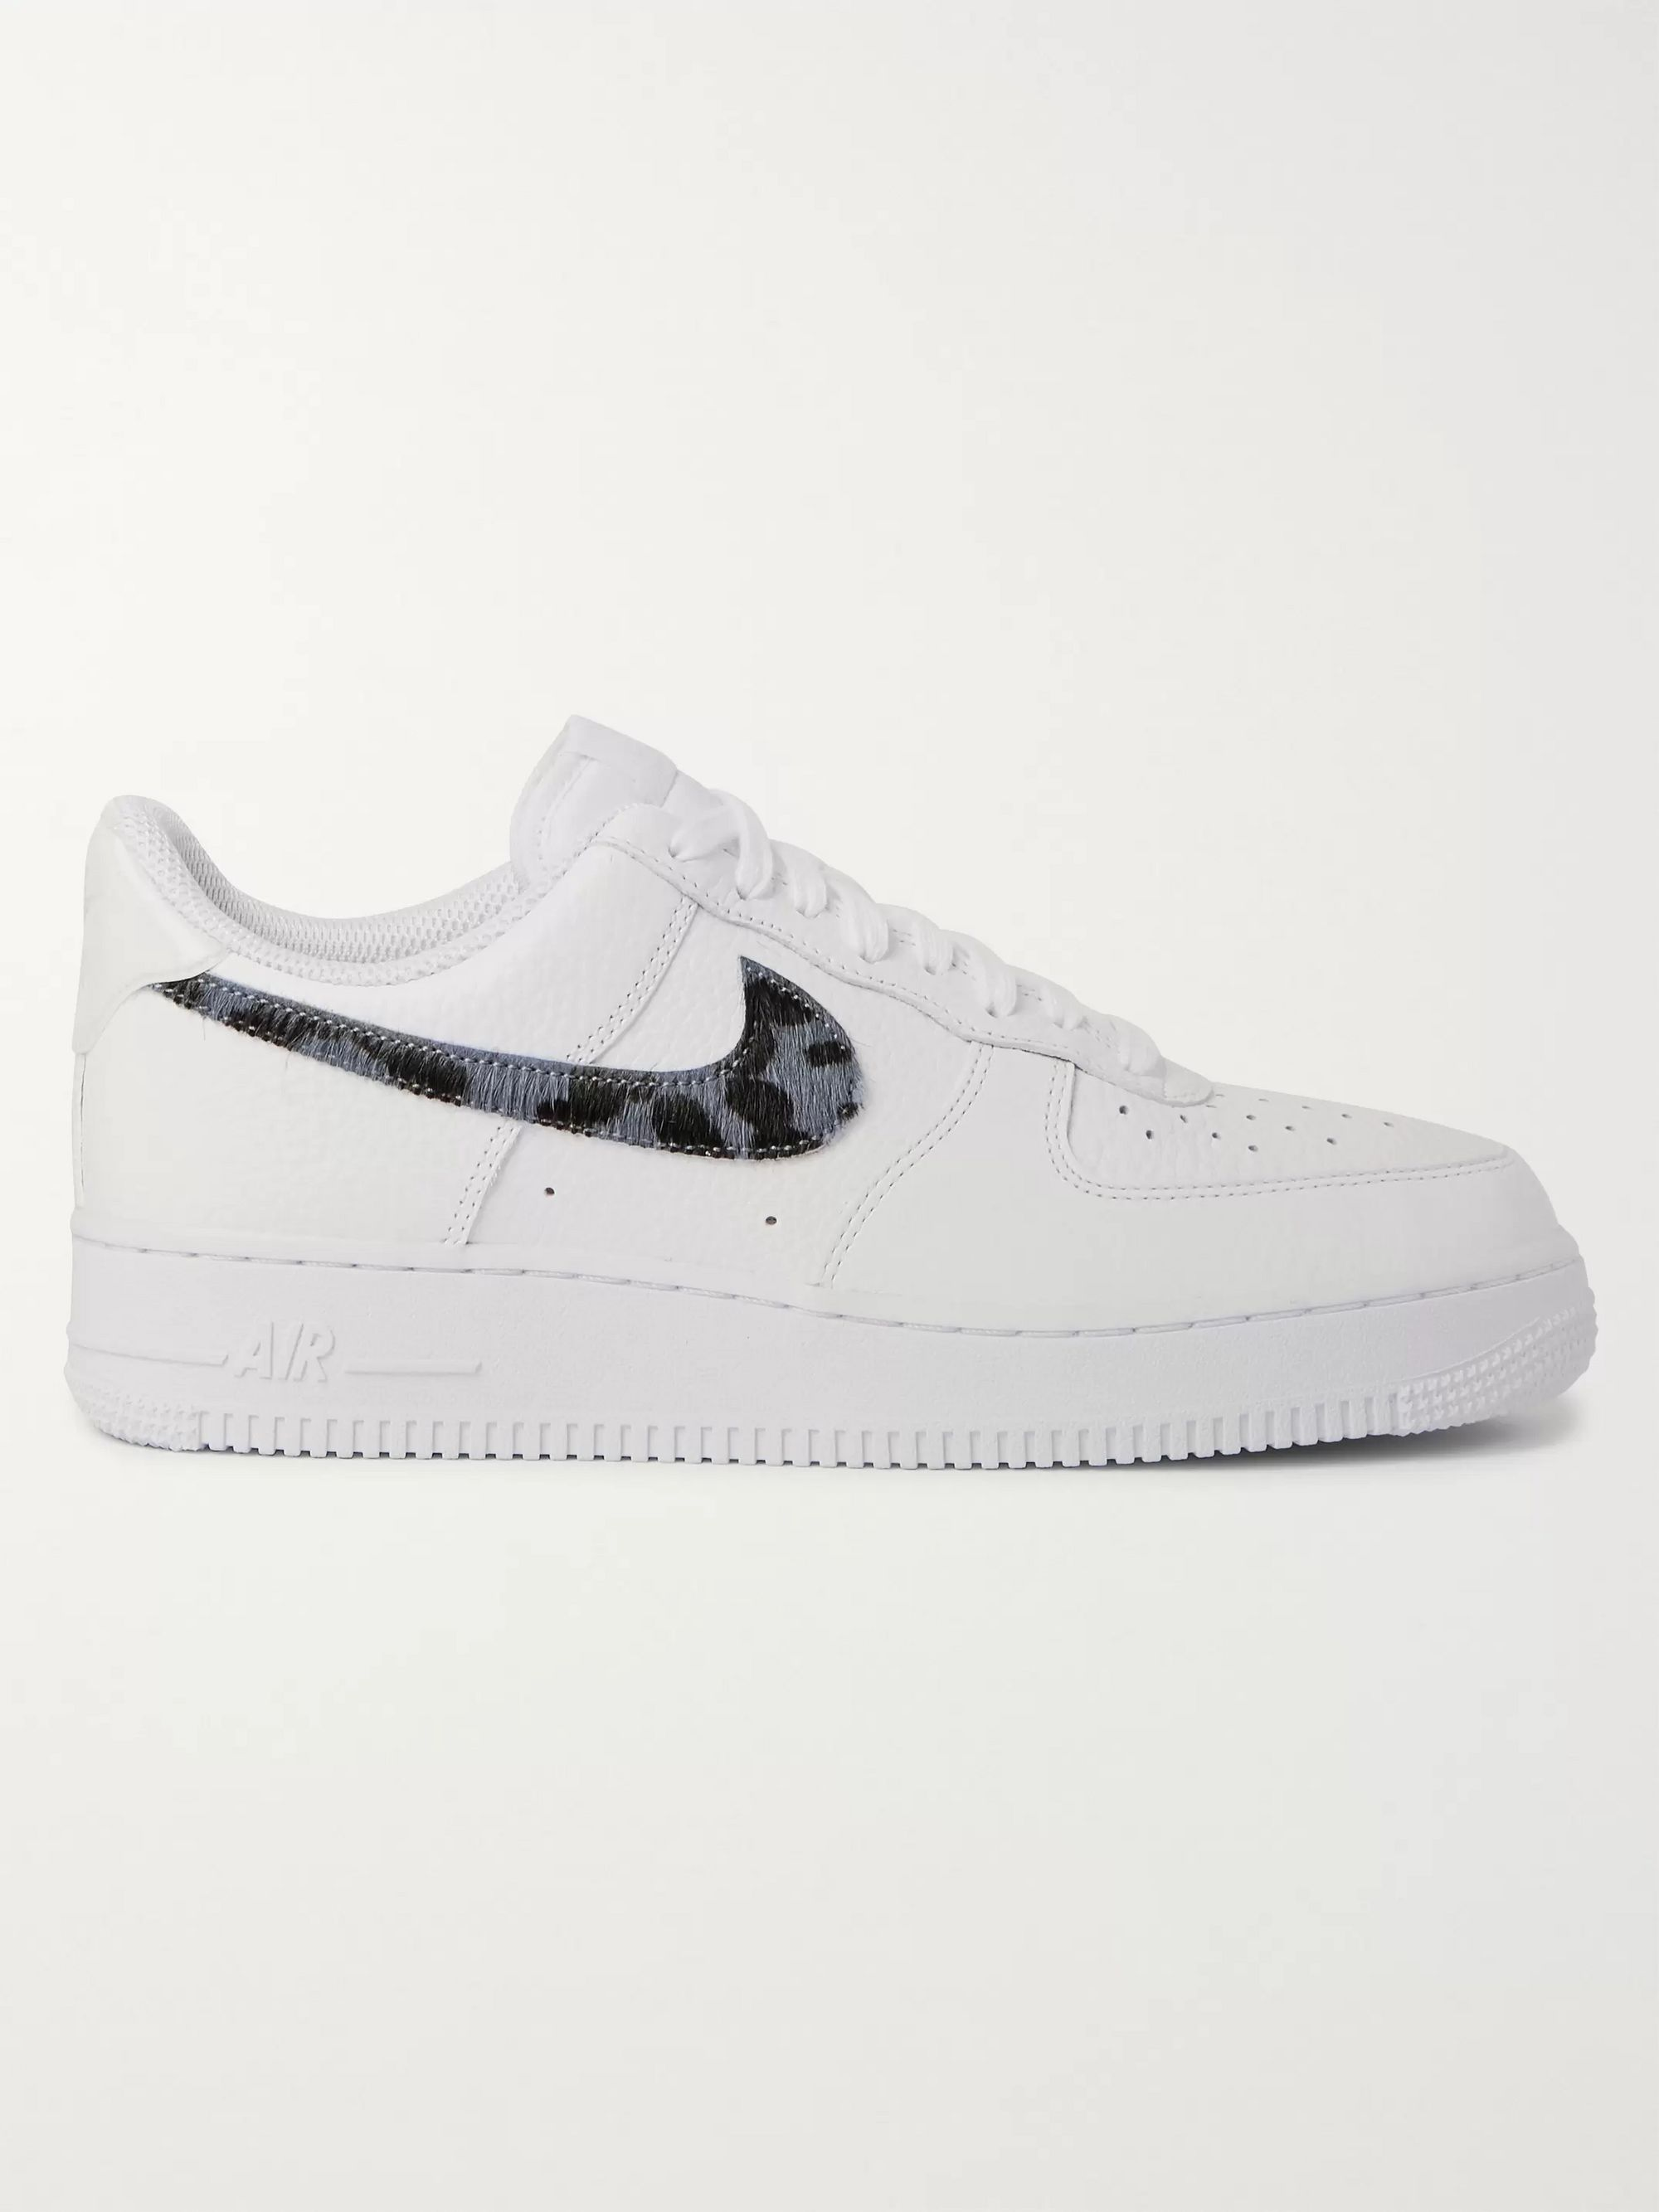 Nike Air Force 1 LV8 Calf Hair and Croc-Effect Full-Grain Leather Sneakers